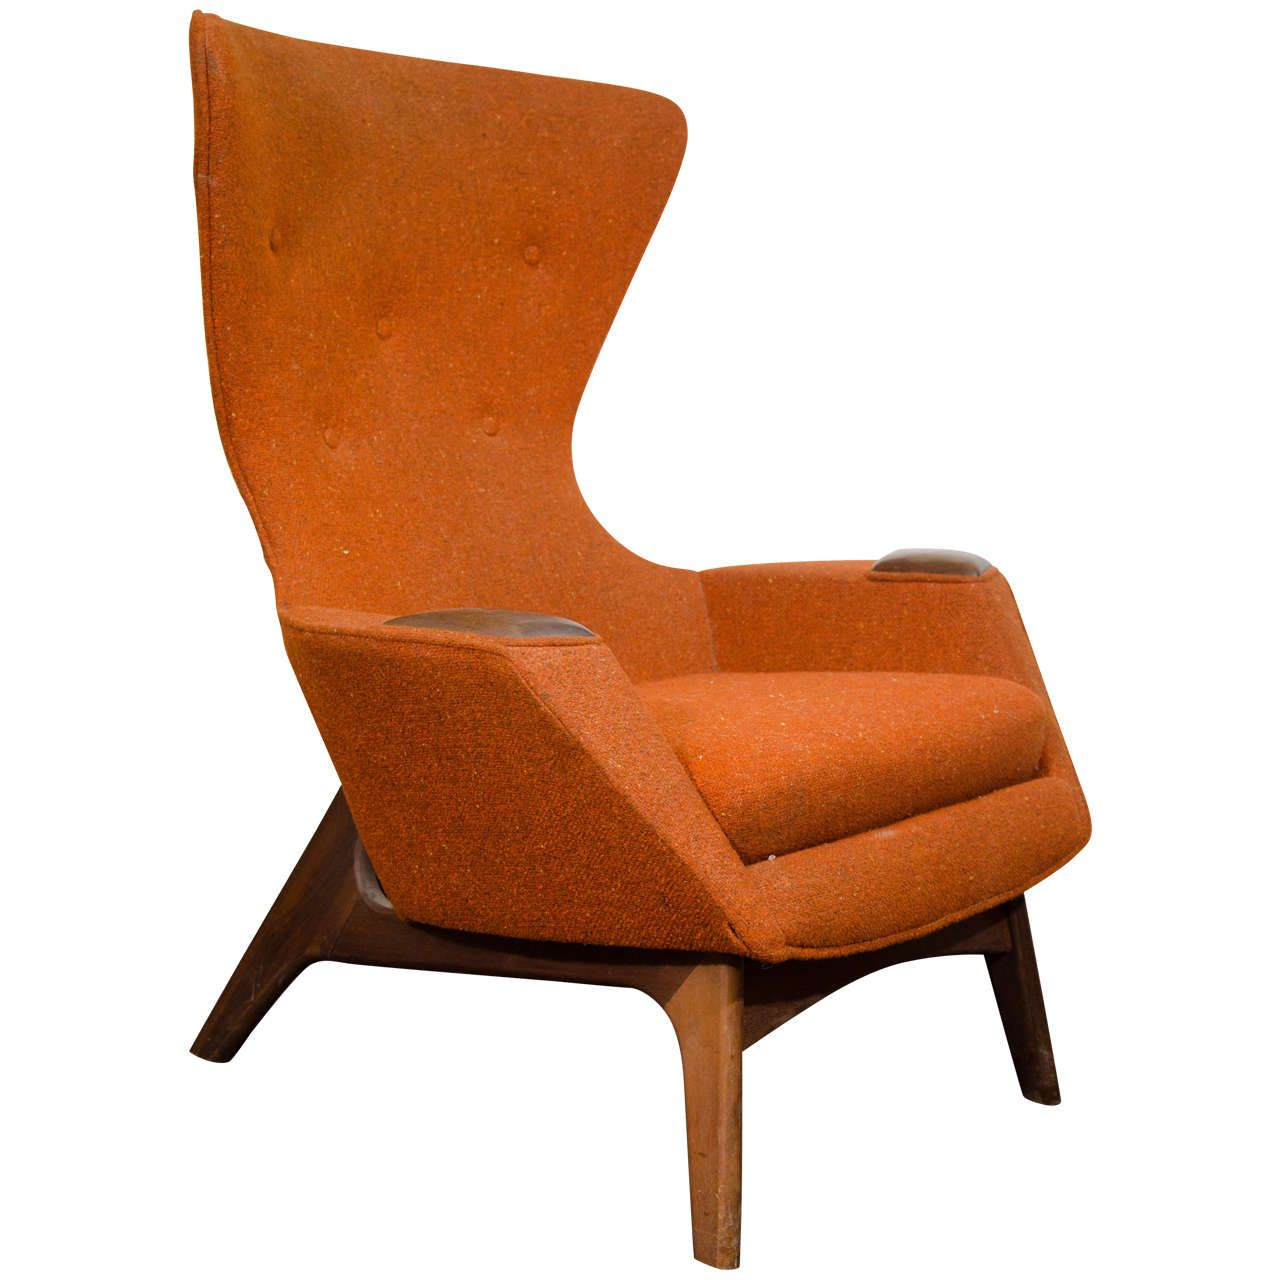 mid century modern accent chair orange small front porch chairs midcentury high back wing by adrian pearsall color